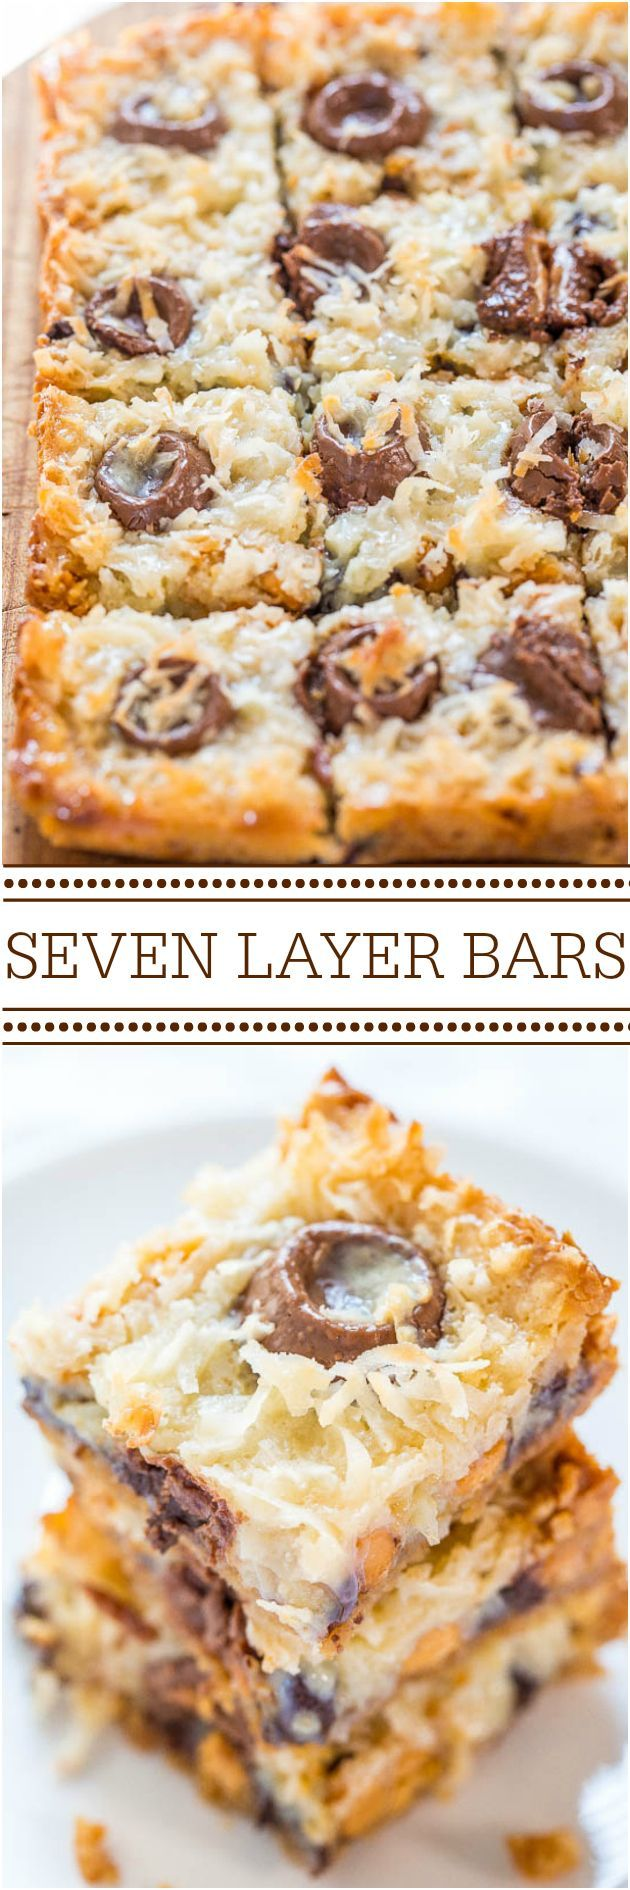 Seven Layer Bars - The classic bars everyone loves but with Rolos! Caramel just makes everything better!! Fast, easy, and always a hit!!